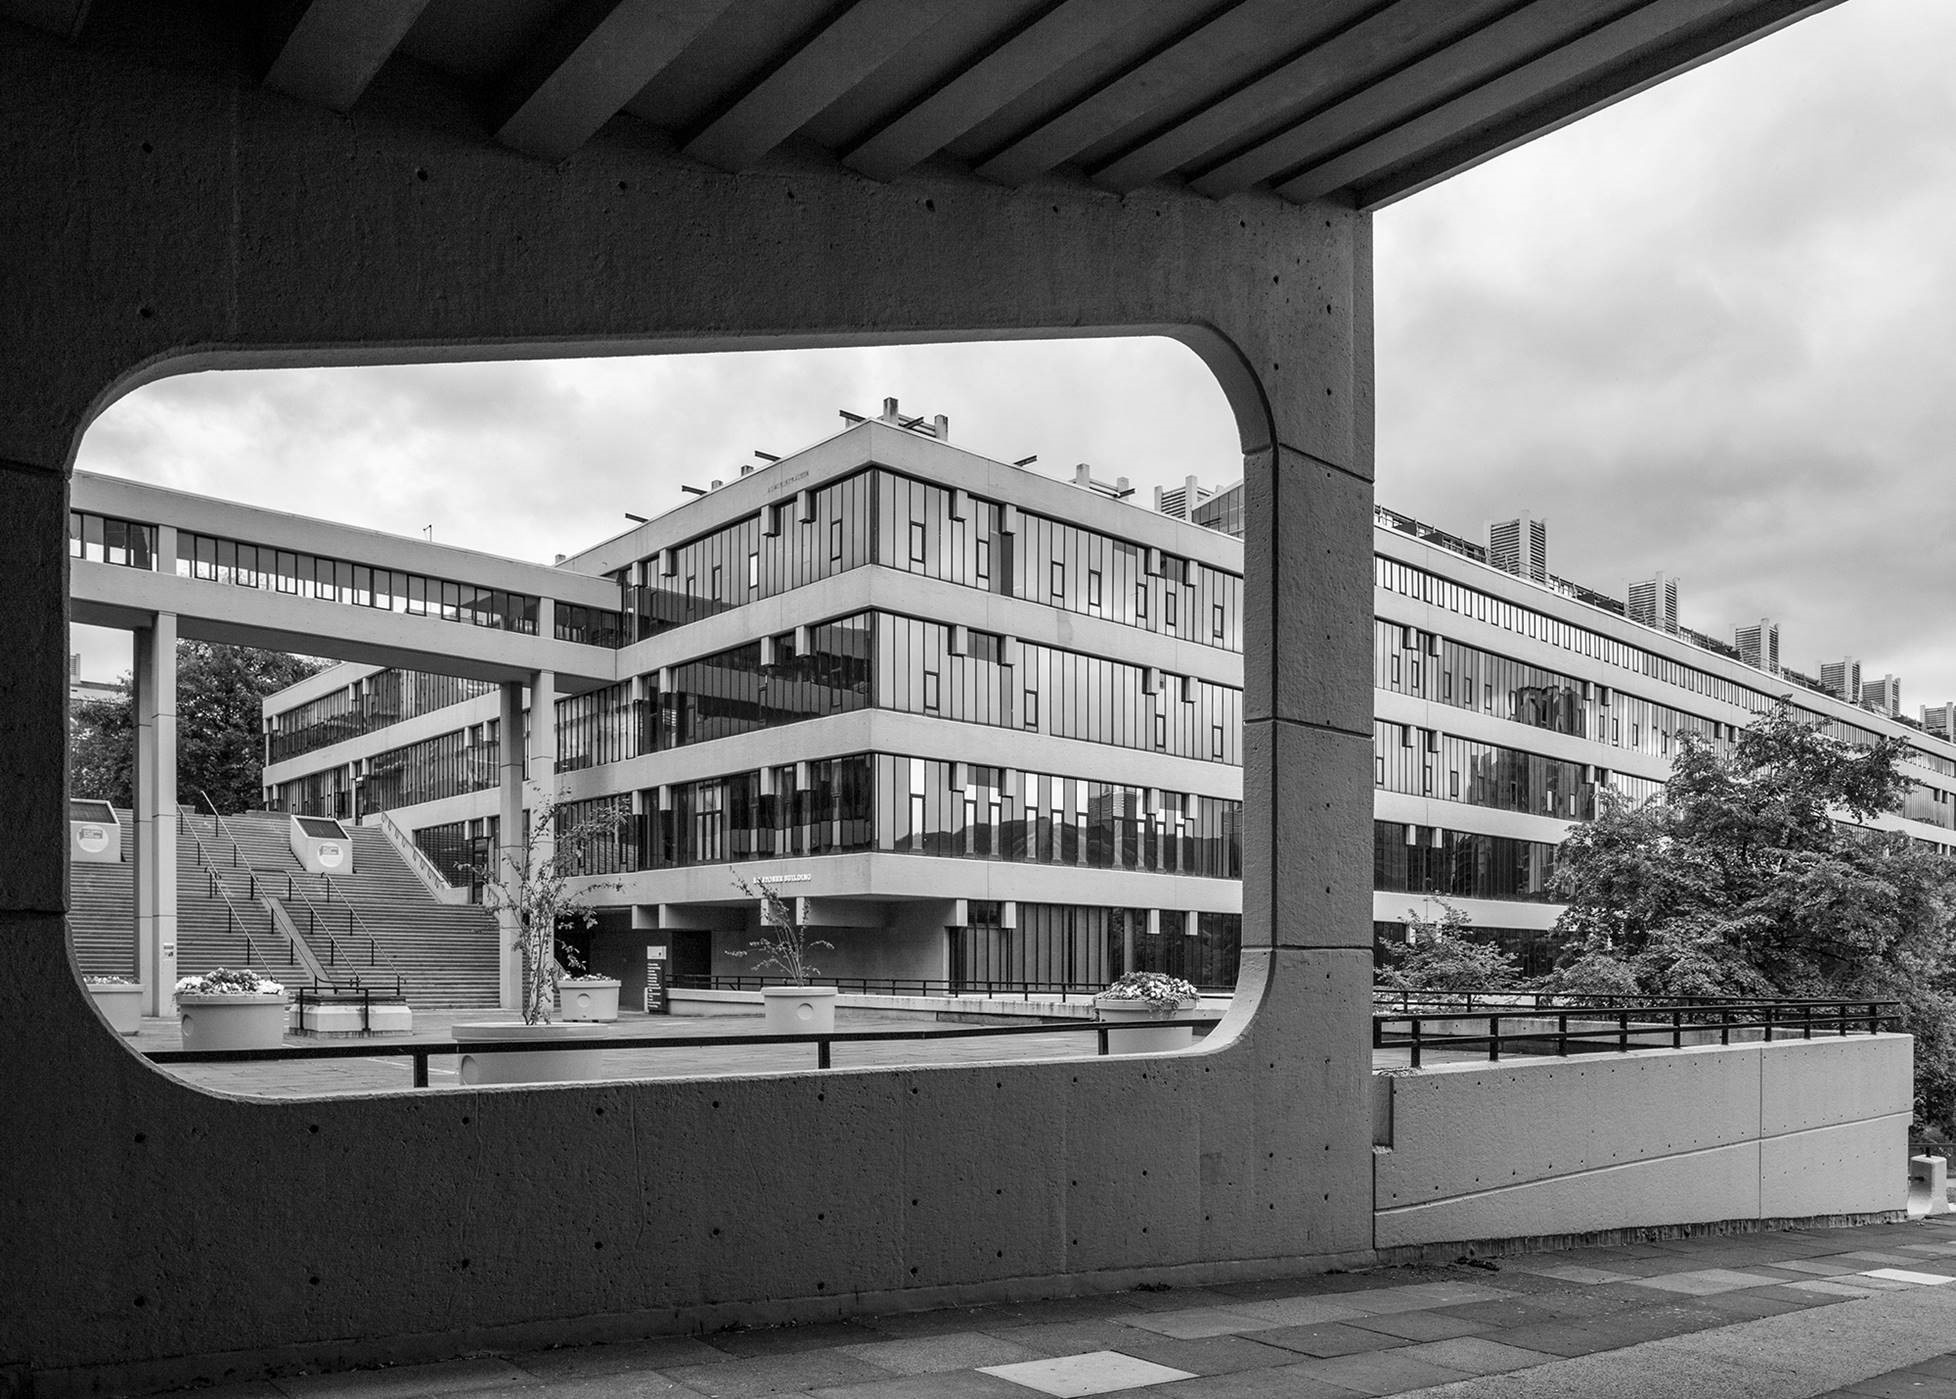 Brutal North: An Exploration of Brutalist Buildings in the North of England